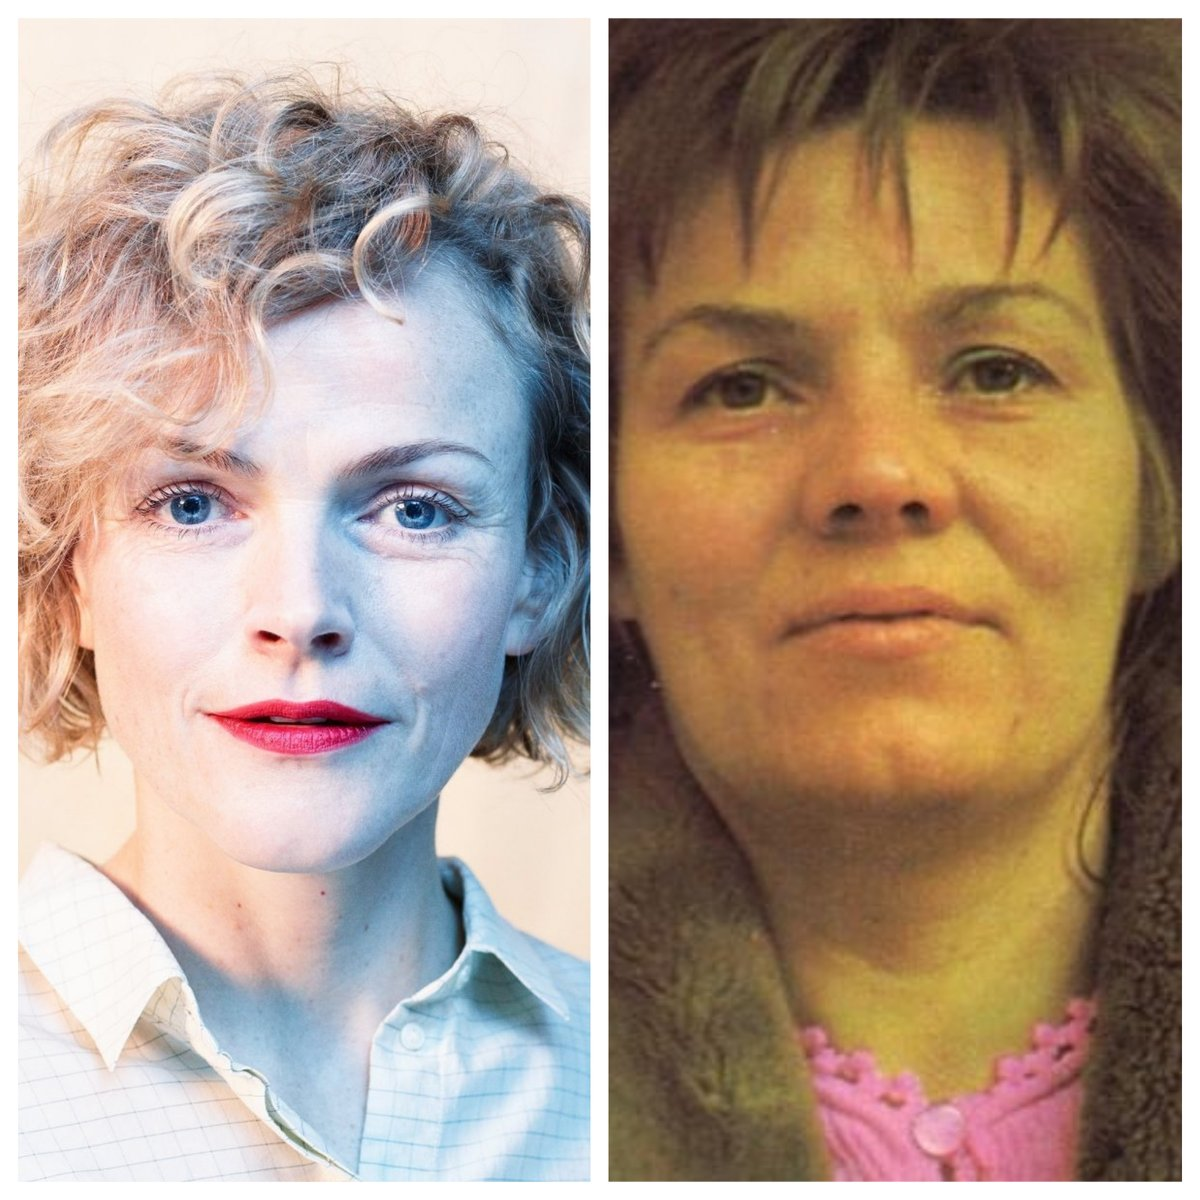 📢Maxine Peake will be reading Night Cleaners Strike by Maggie Gee, online Feb 10th 📢Inspired by the life of May Hobbs who formed the Cleaners Action Group (CAG) in 1971 determined to improve the pay and working conditions of all cleaners 📢Tickets>housmans.com/events/